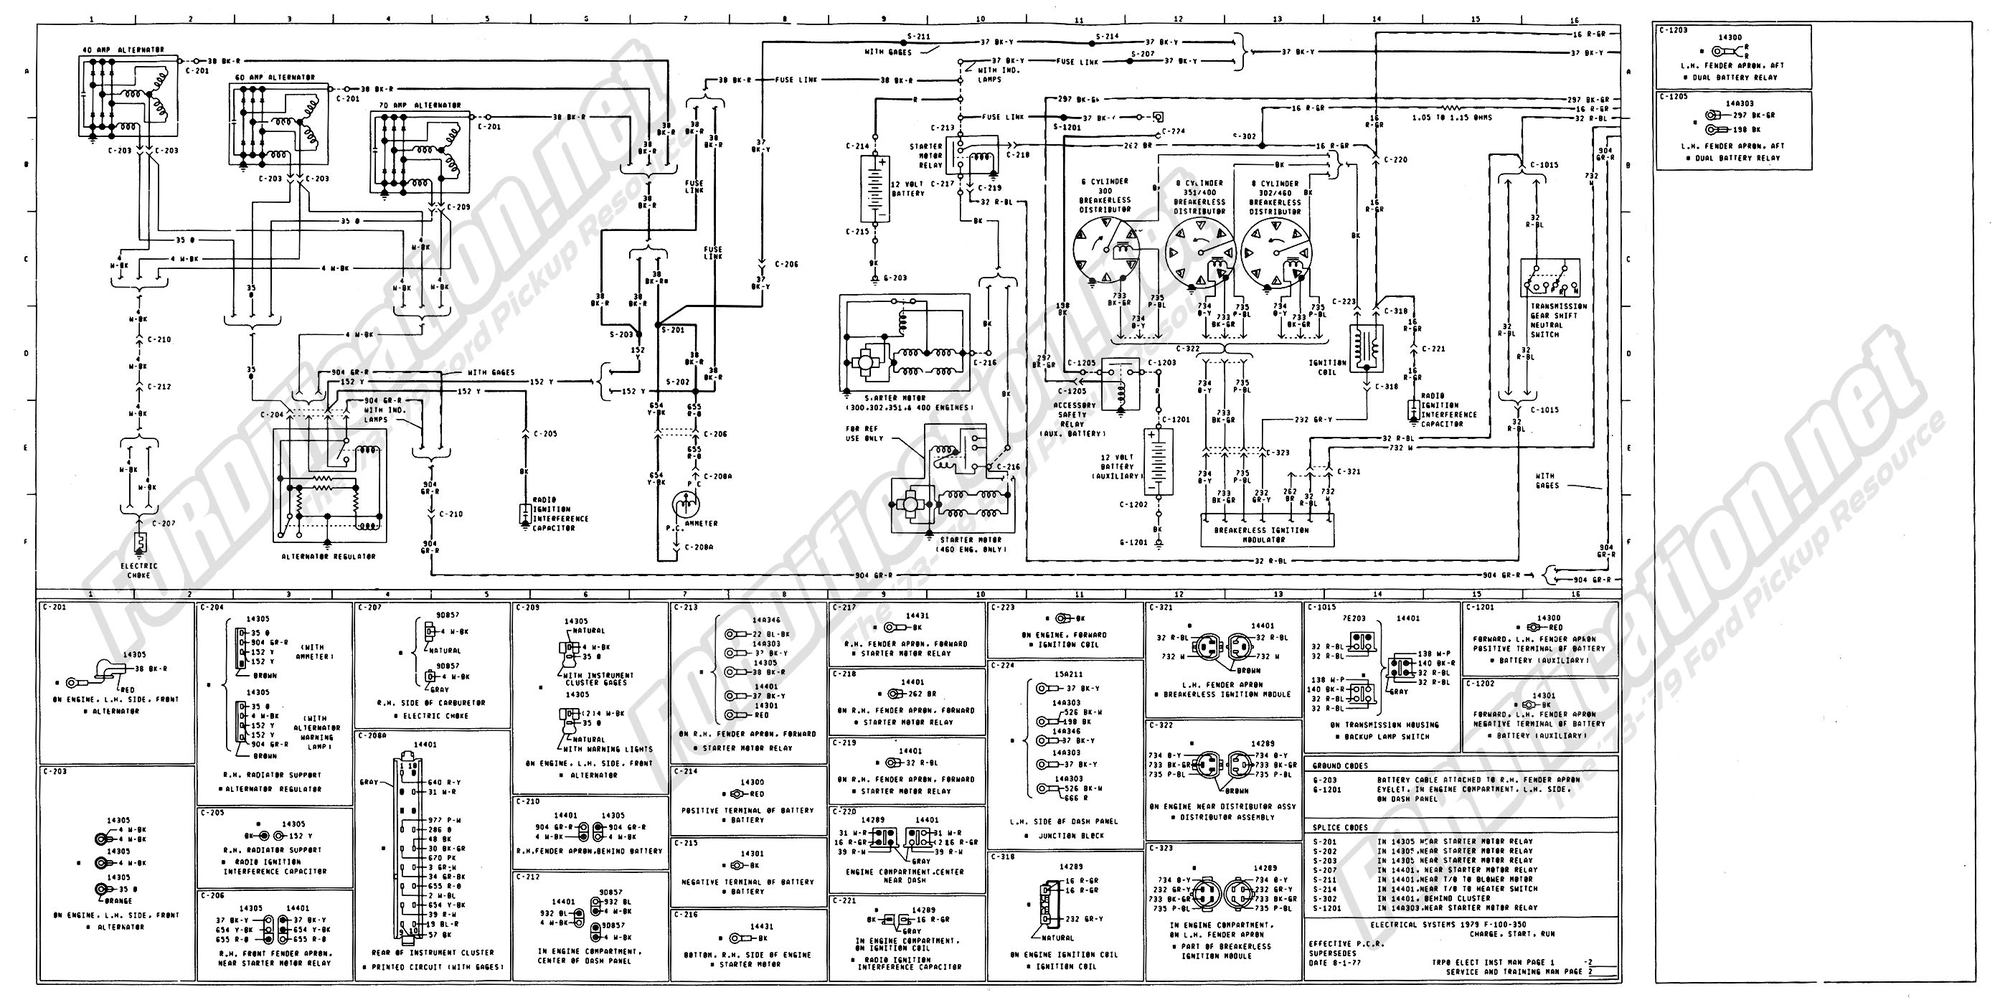 2016 MACK TRUCK WIRING - Auto Electrical Wiring Diagram Mack Starter Wiring Schematics on mack truck wiring, mack wiring diagrams 1977, mack wiring diagrams 83, 1985 mack schematics, mack brake light wiring diagram 2008, mack parts, mack ecu schematics, mack ch613 wiring diagram for 2009, mack wiring stereo, mack suspension, mack wiring diagram for 1988, mack diagnostic codes, mack wiring harness, mack truck schematics,